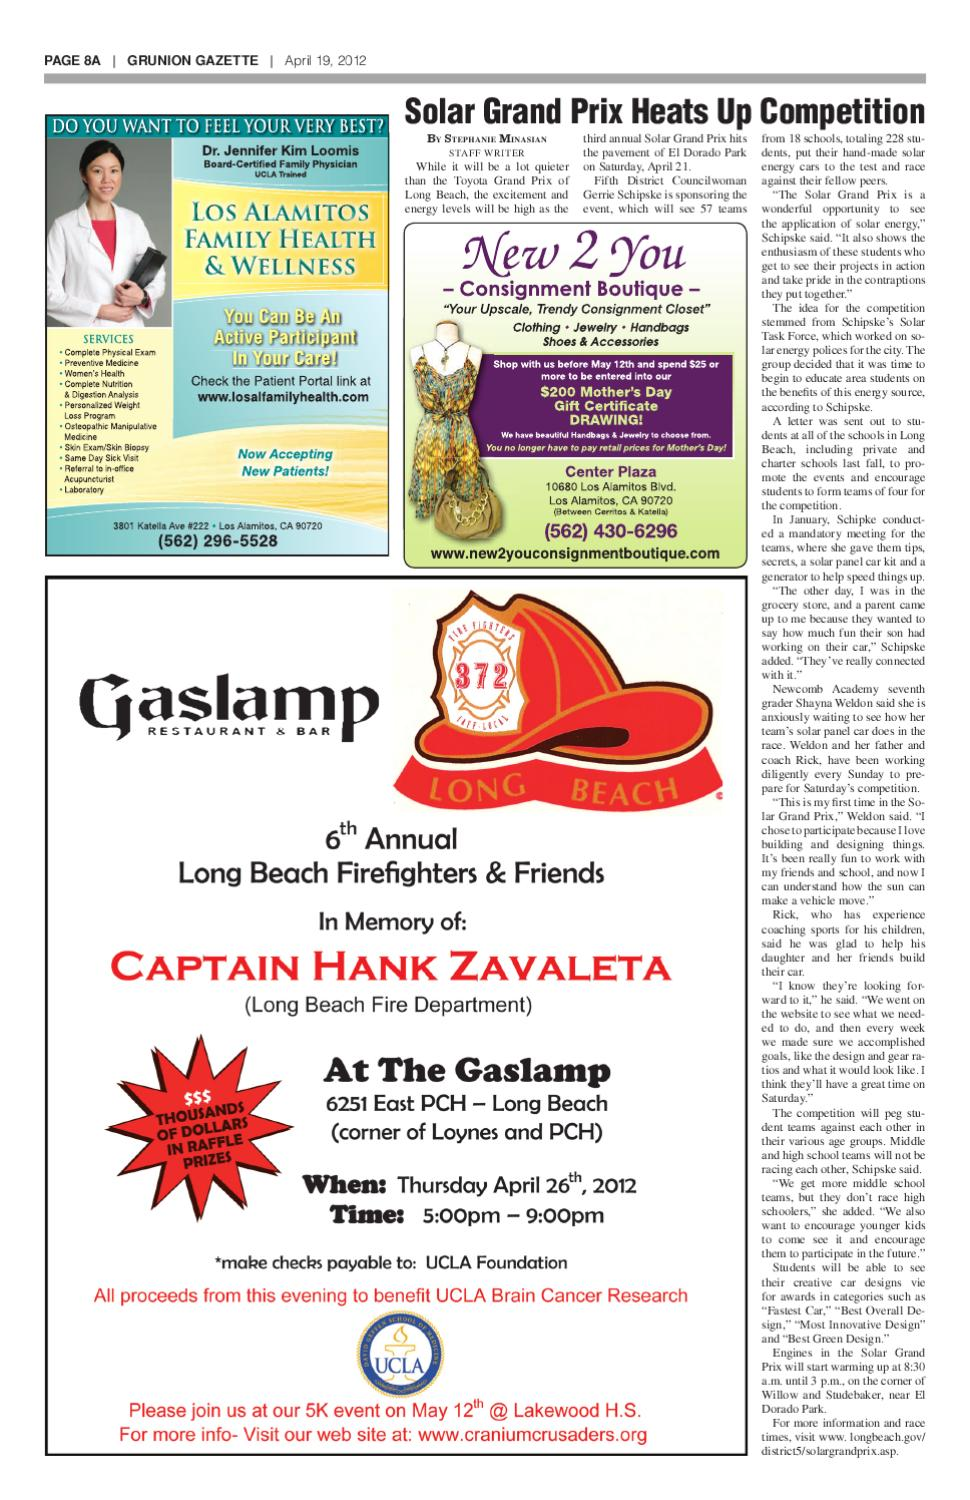 Grunion Gazette 04-19-12 by Jesse Lopez - issuu